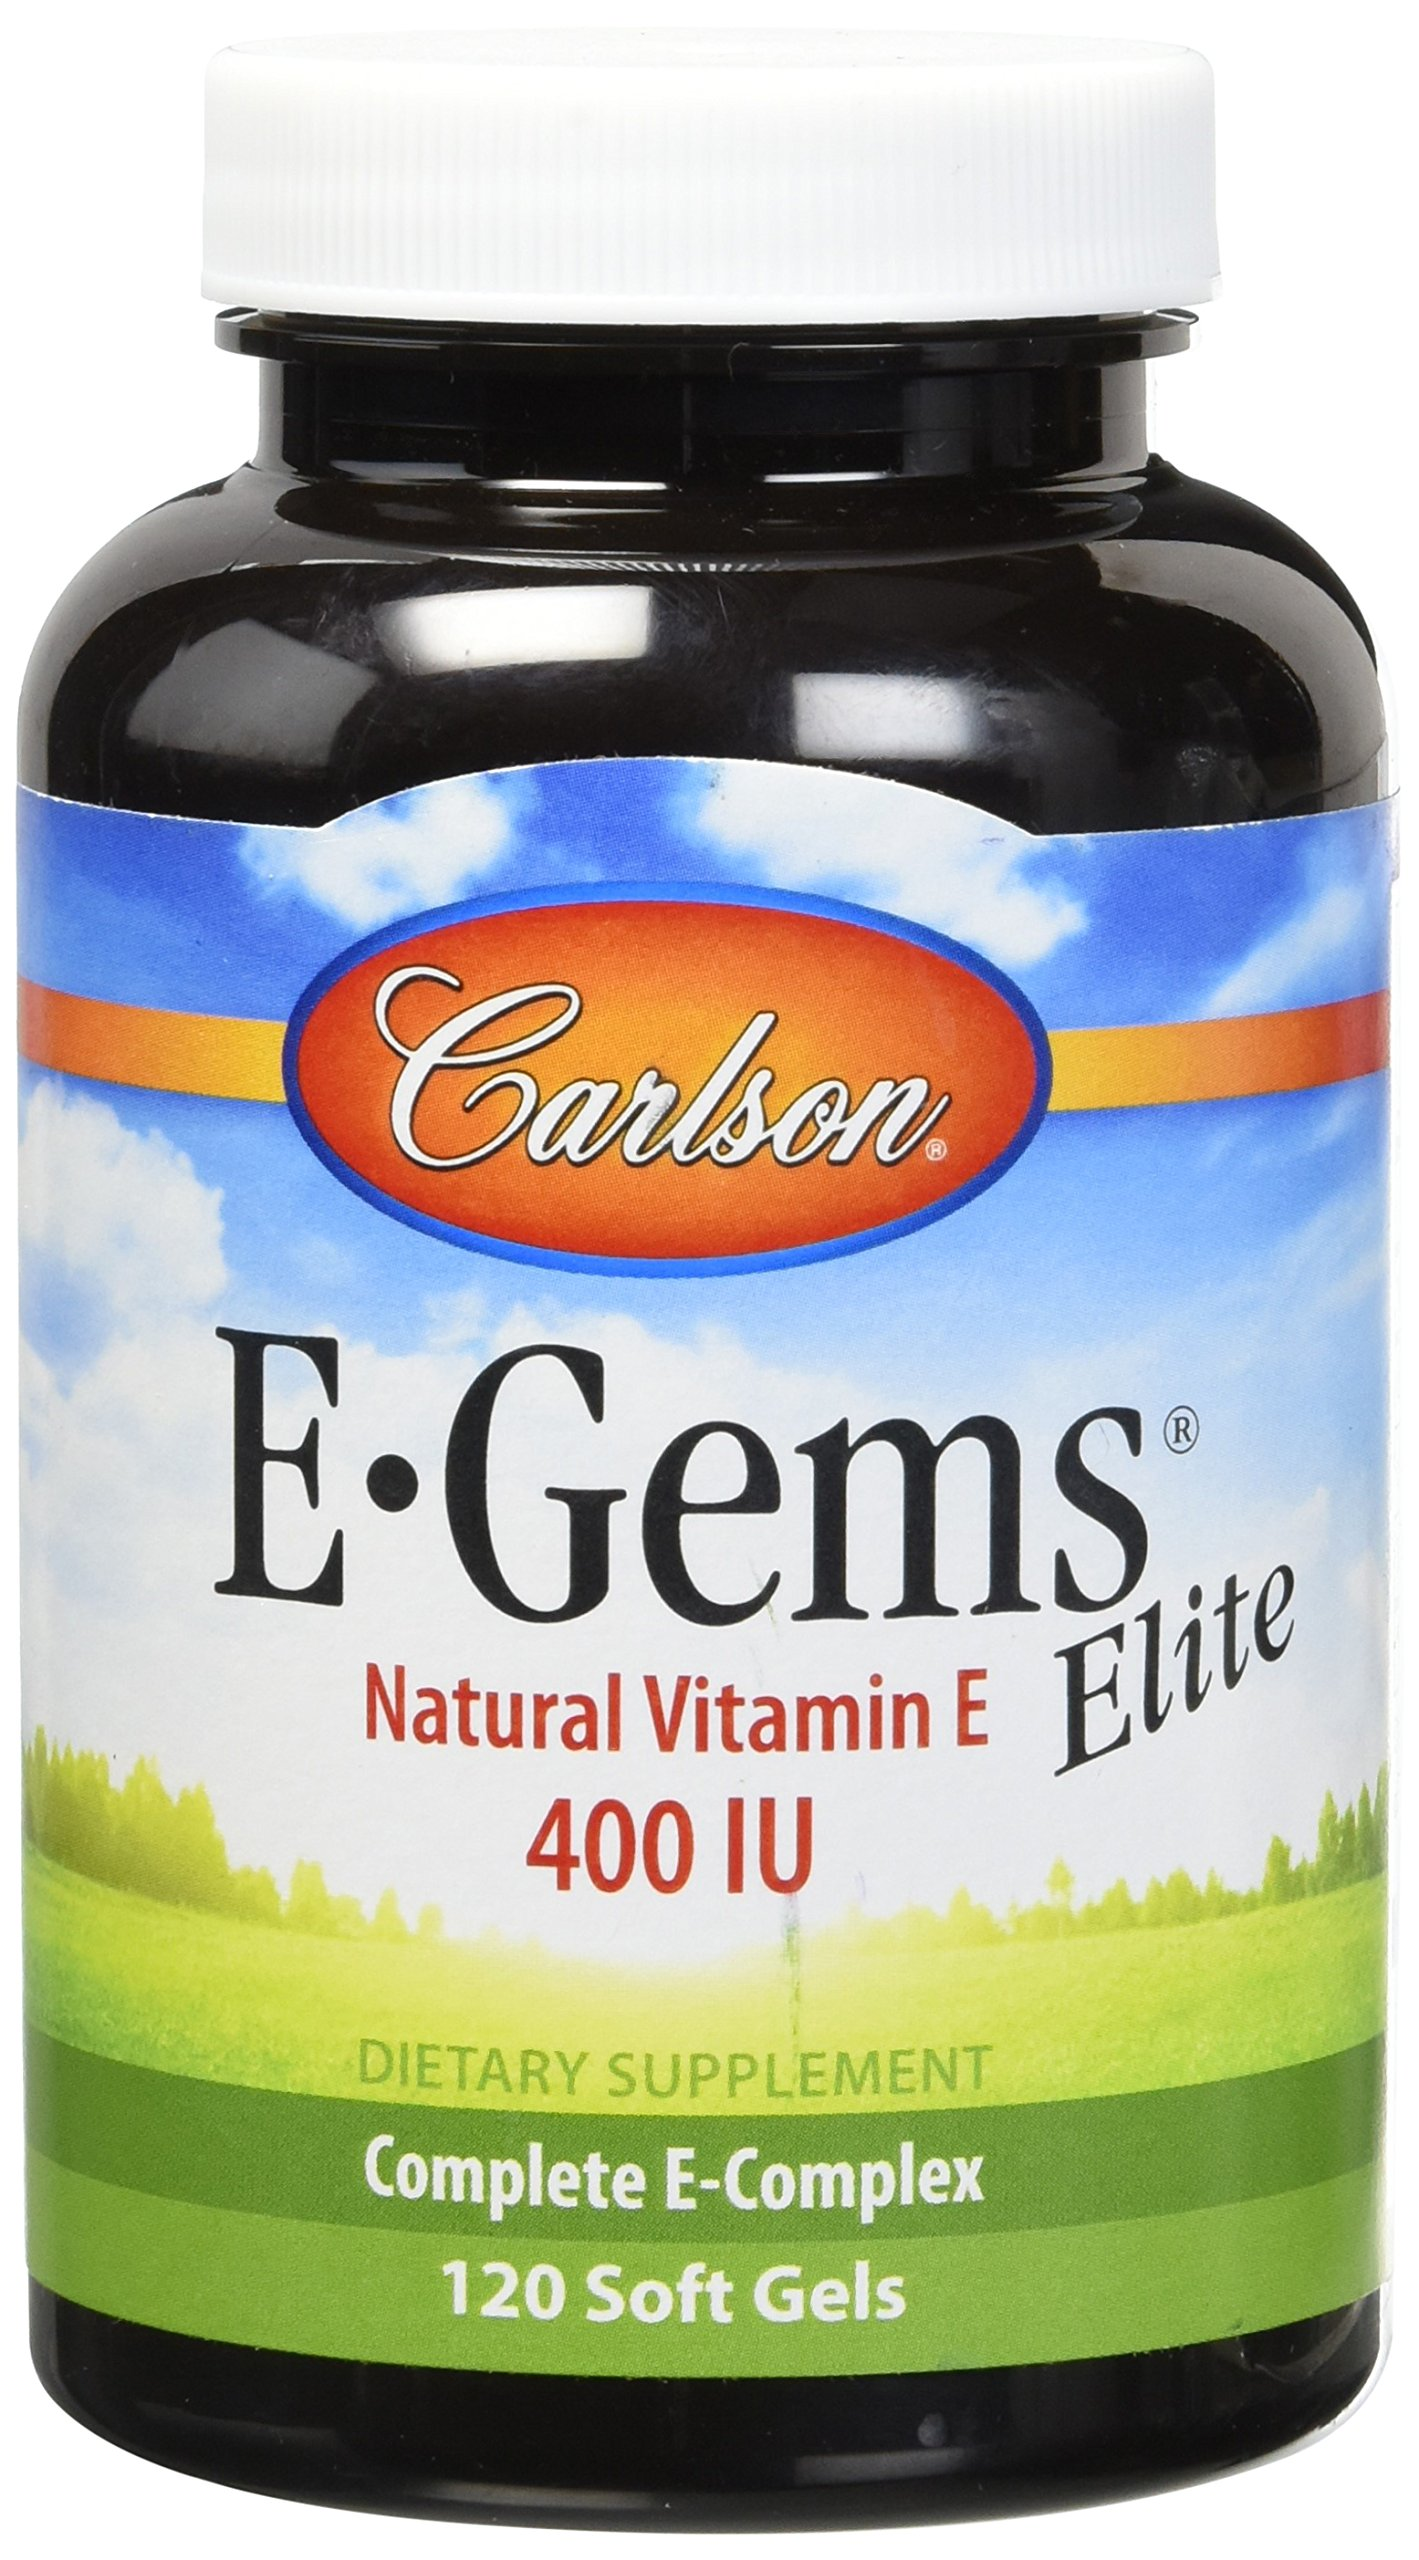 Carlson E-gems Elite 400 IU,120 Softgels